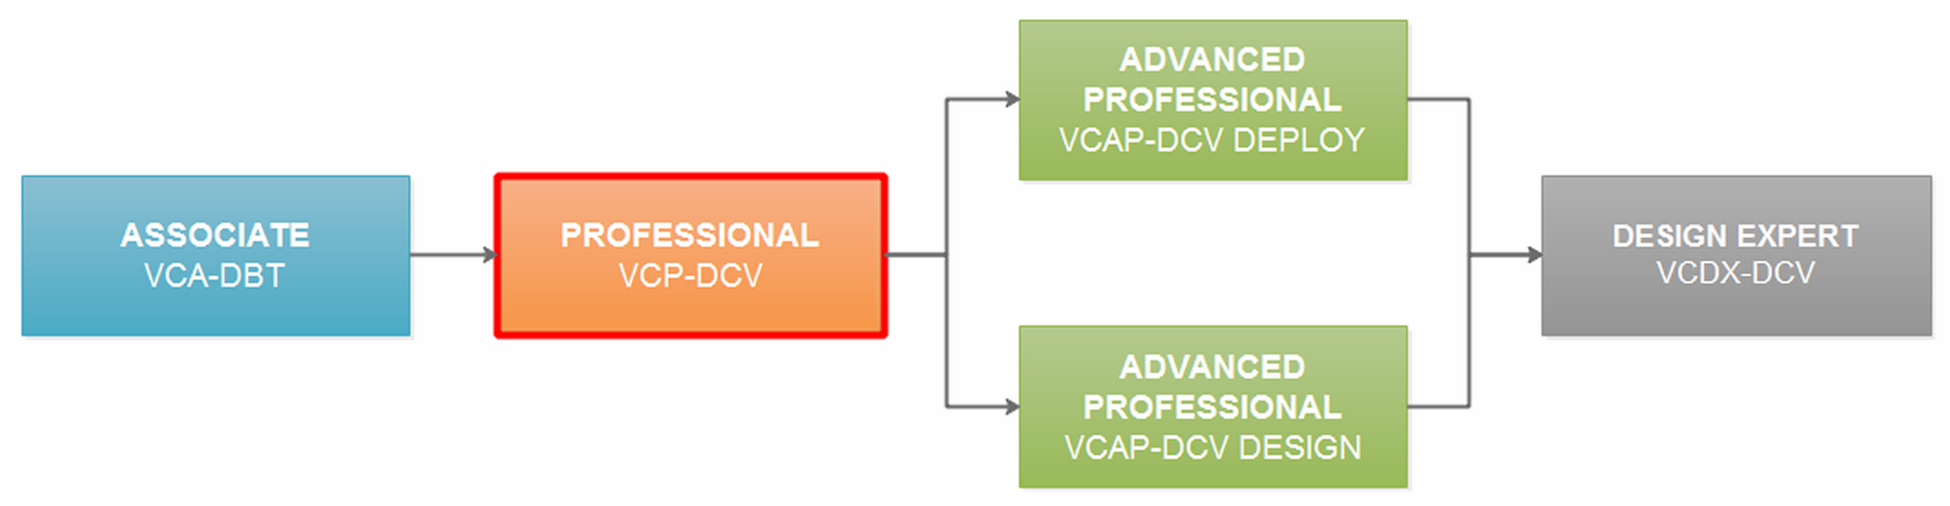 Whats Next Data Center Virtualization Certification Vcp65 Dcv